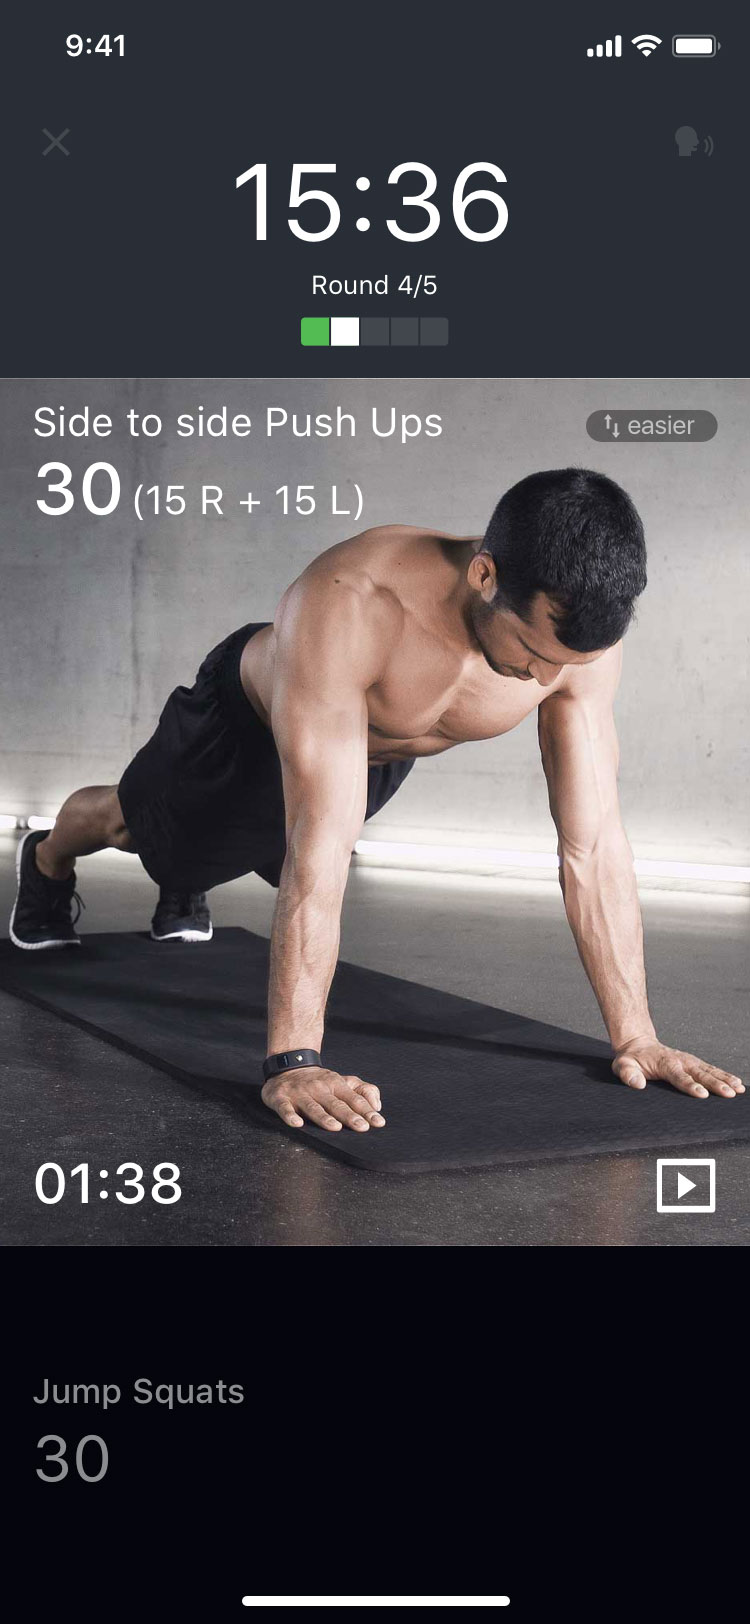 mobile screen showing an exercise